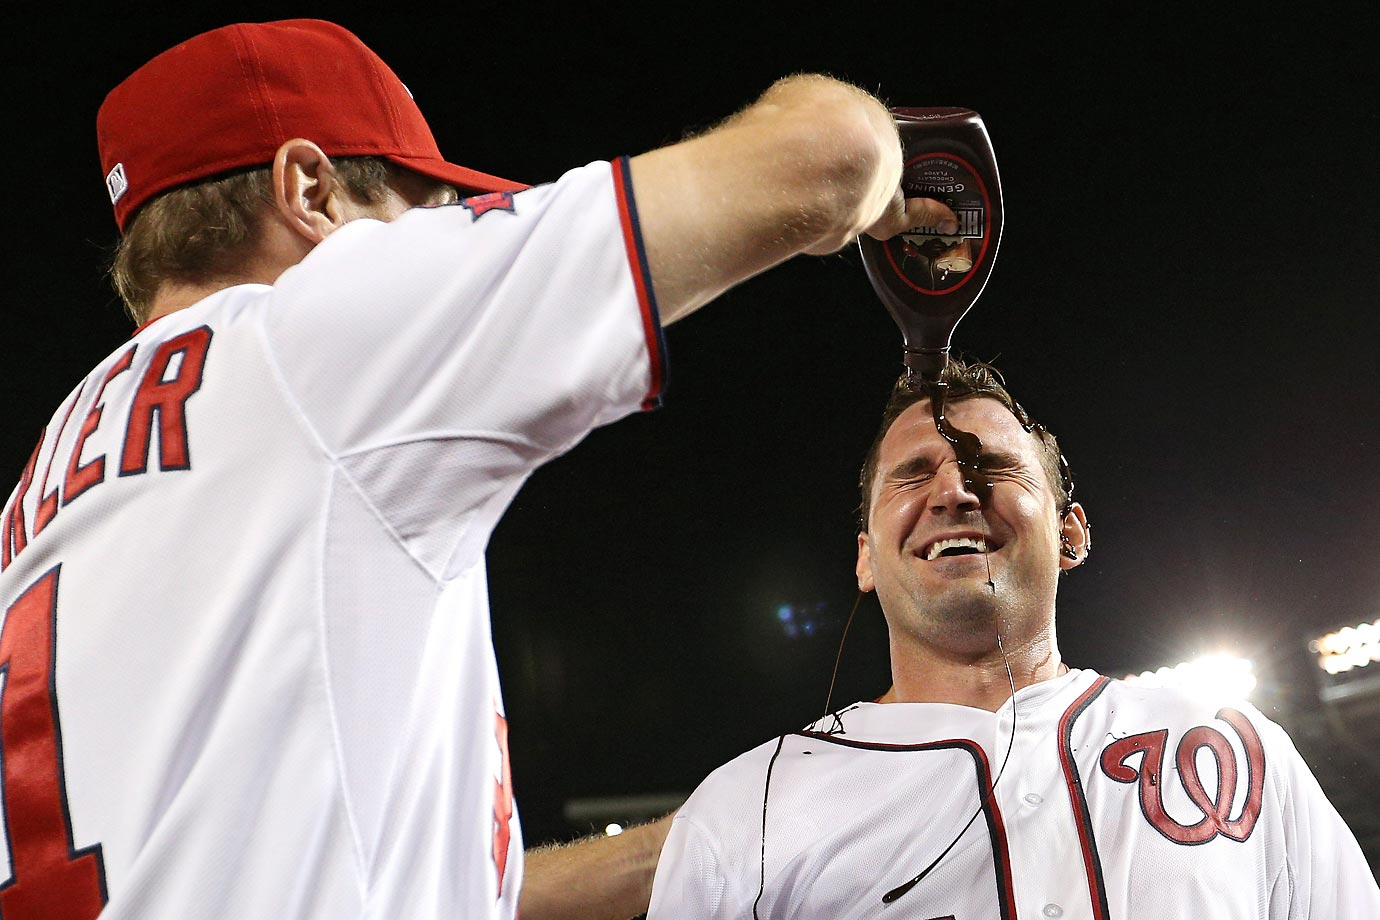 Ryan Zimmerman of the Washington Nationals is doused with chocolate by Max Scherzer after hitting a two run walk-off home run in the tenth inning against the New York Yankees.